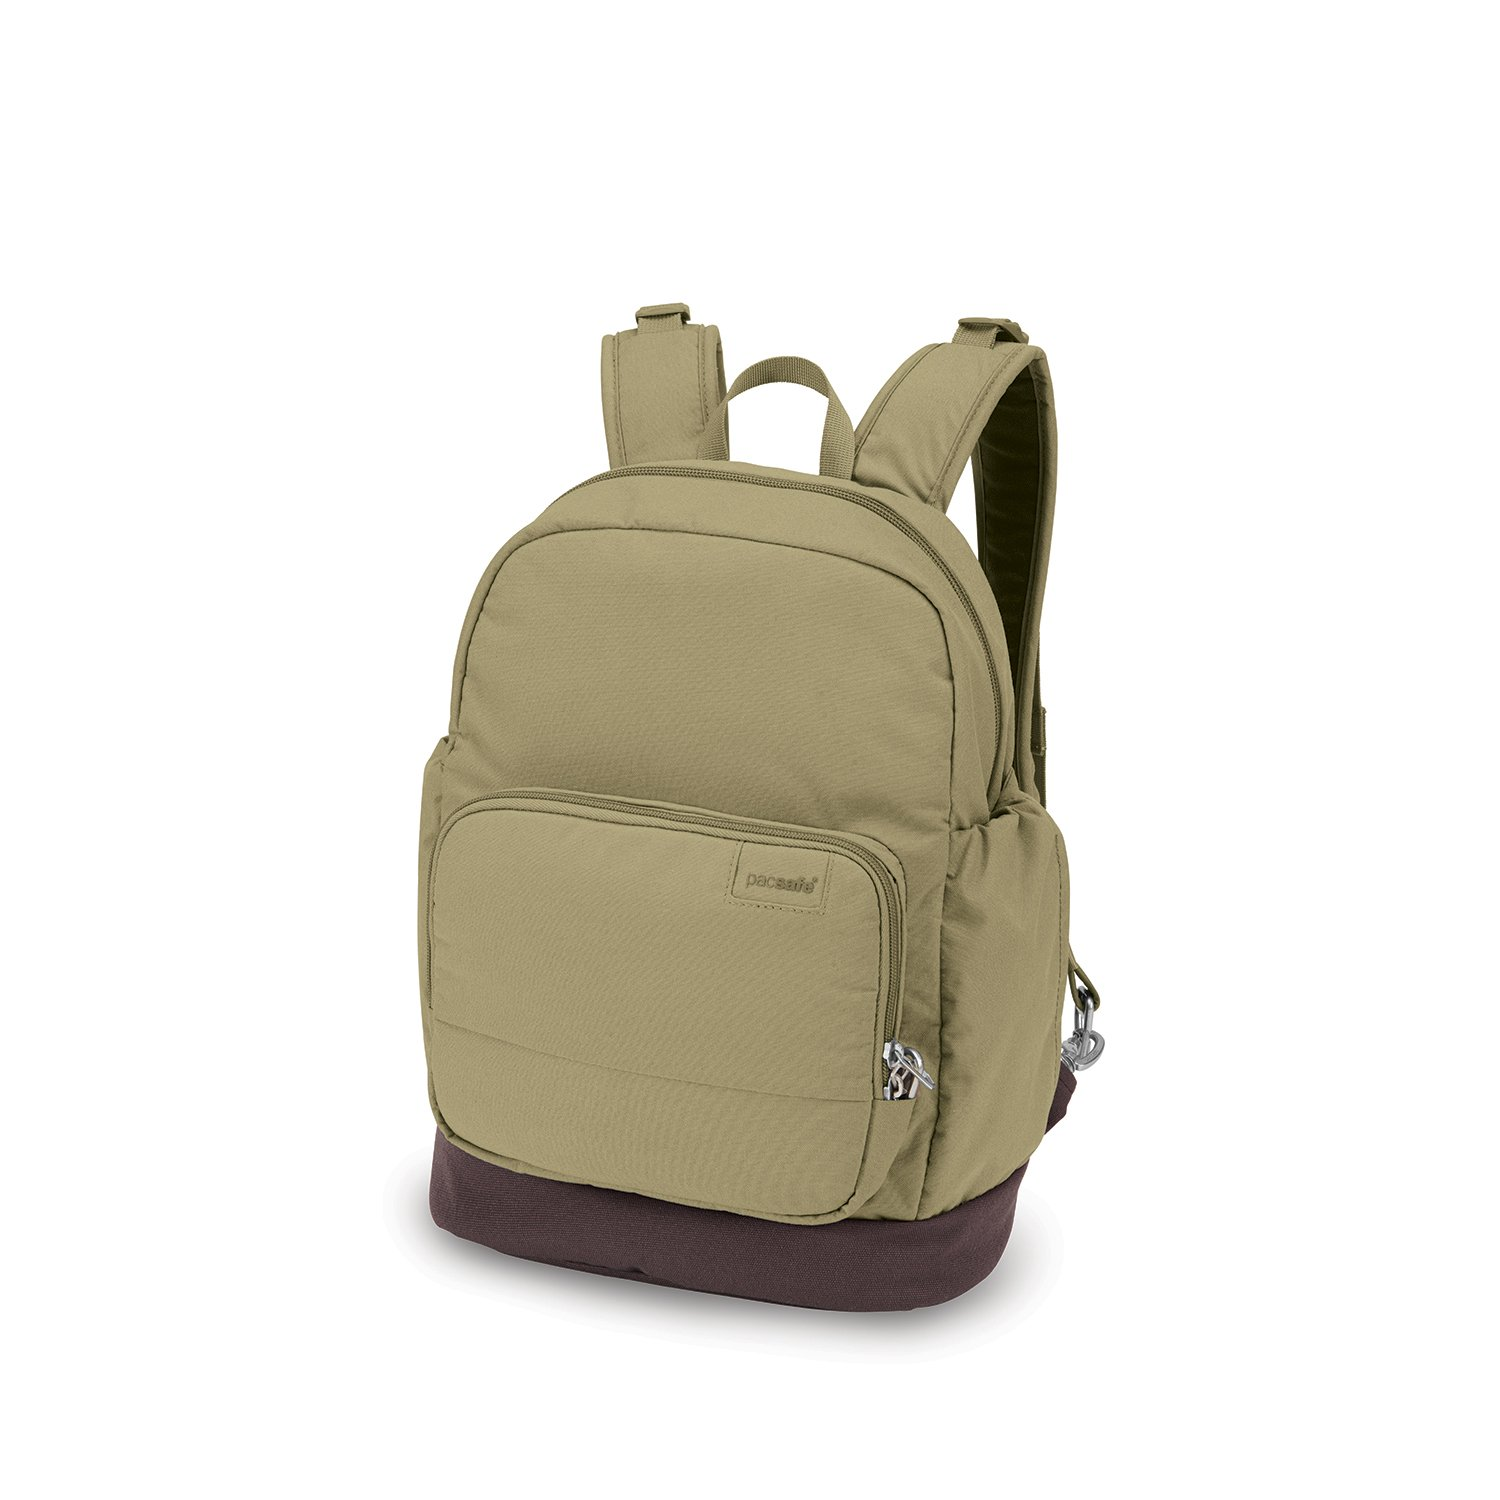 Pacsafe Citysafe LS300 Anti-Theft Backpack, Rosemary